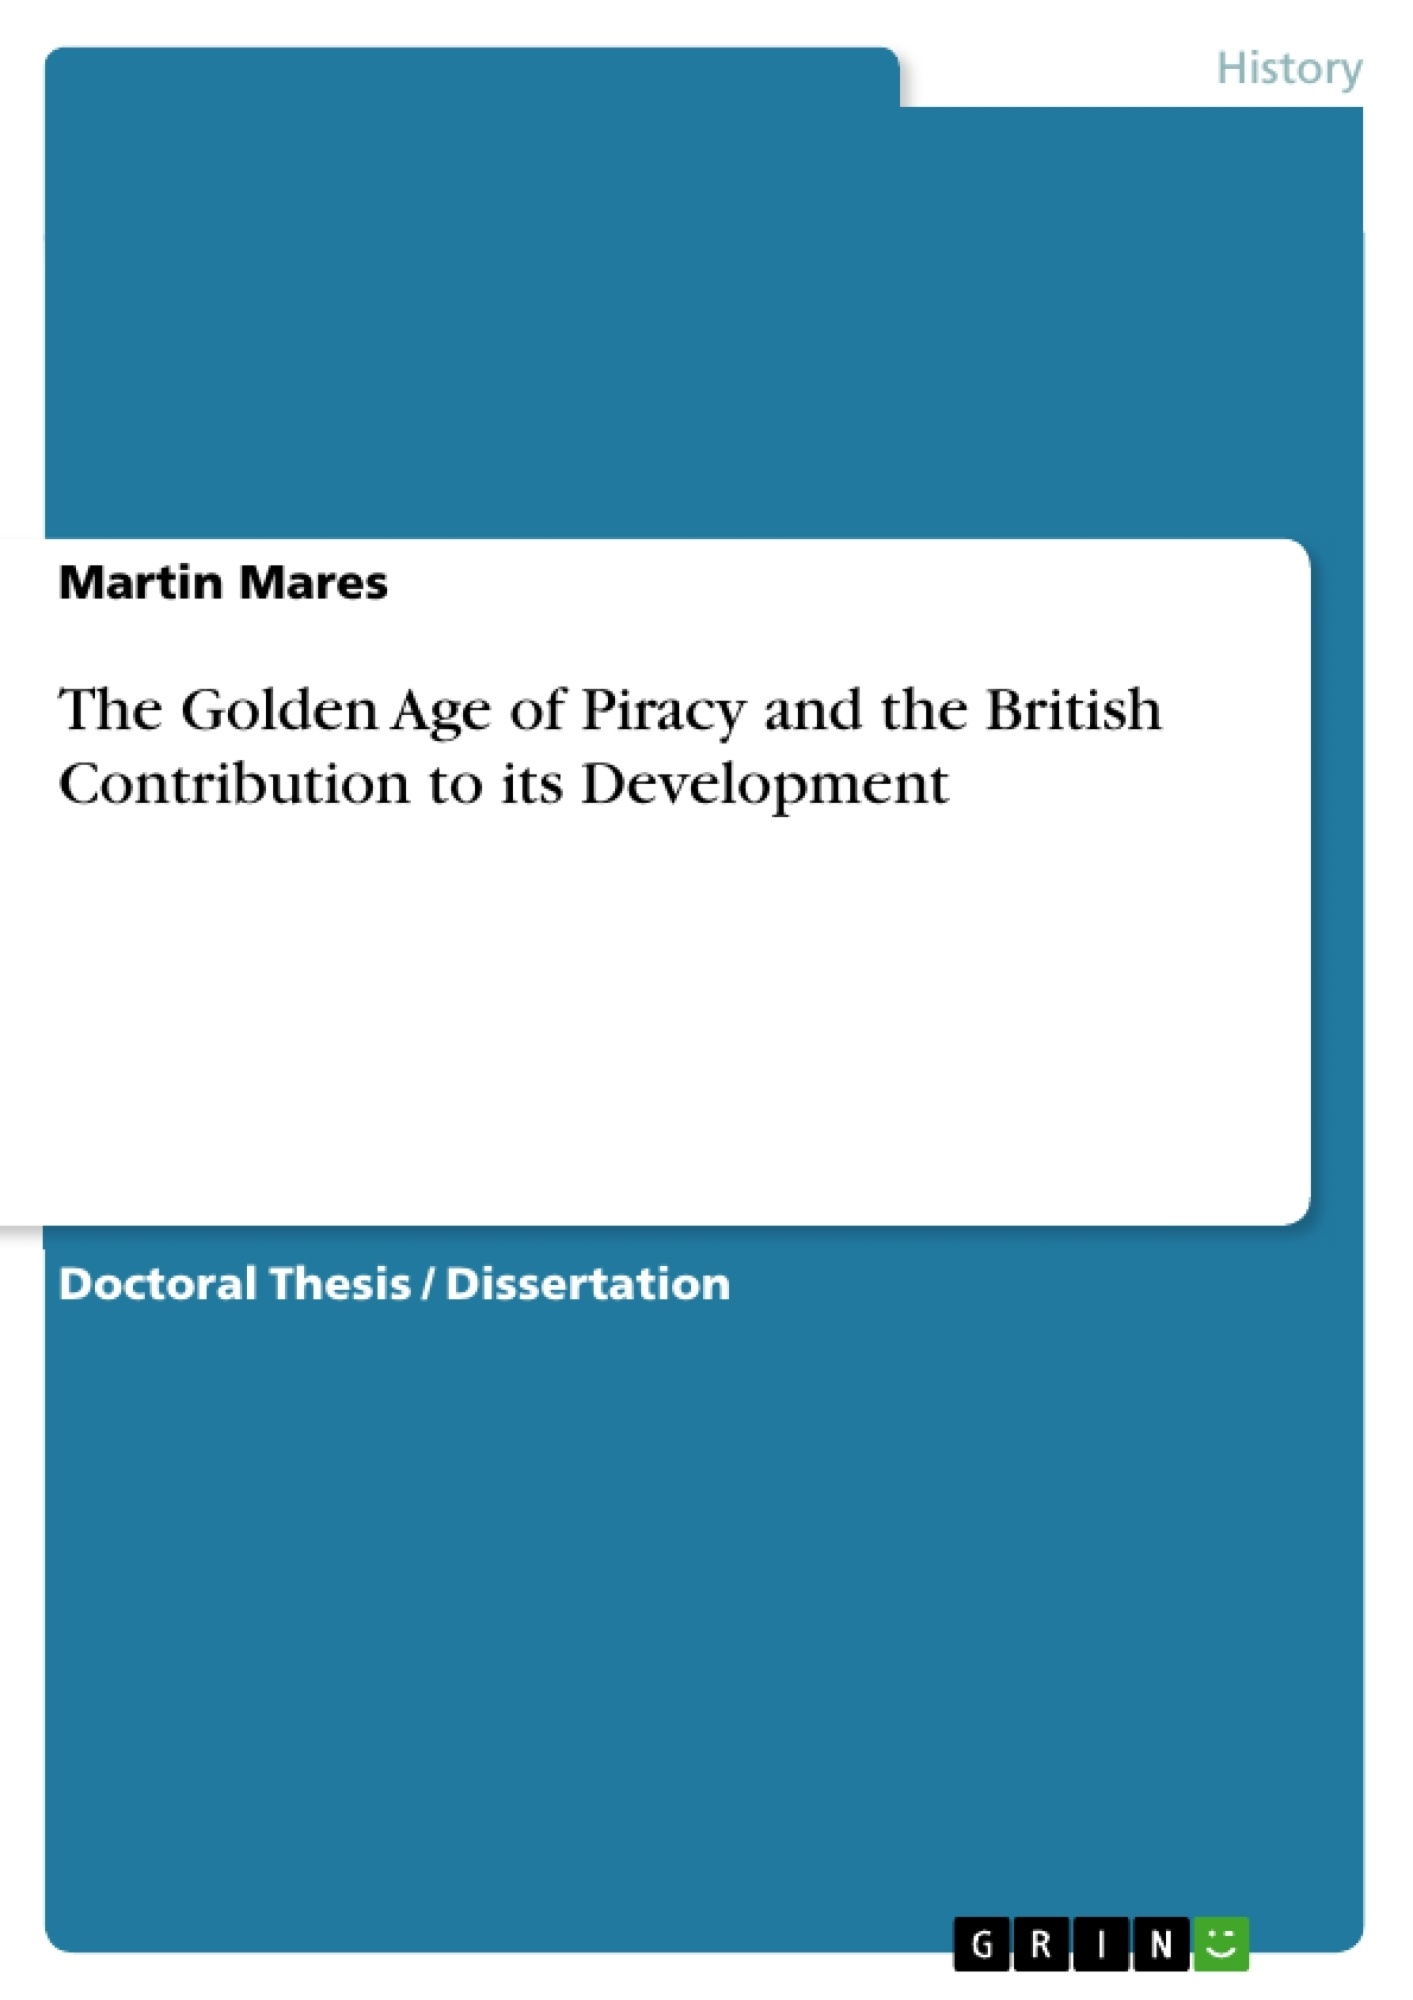 Title: The Golden Age of Piracy and the British Contribution to its Development